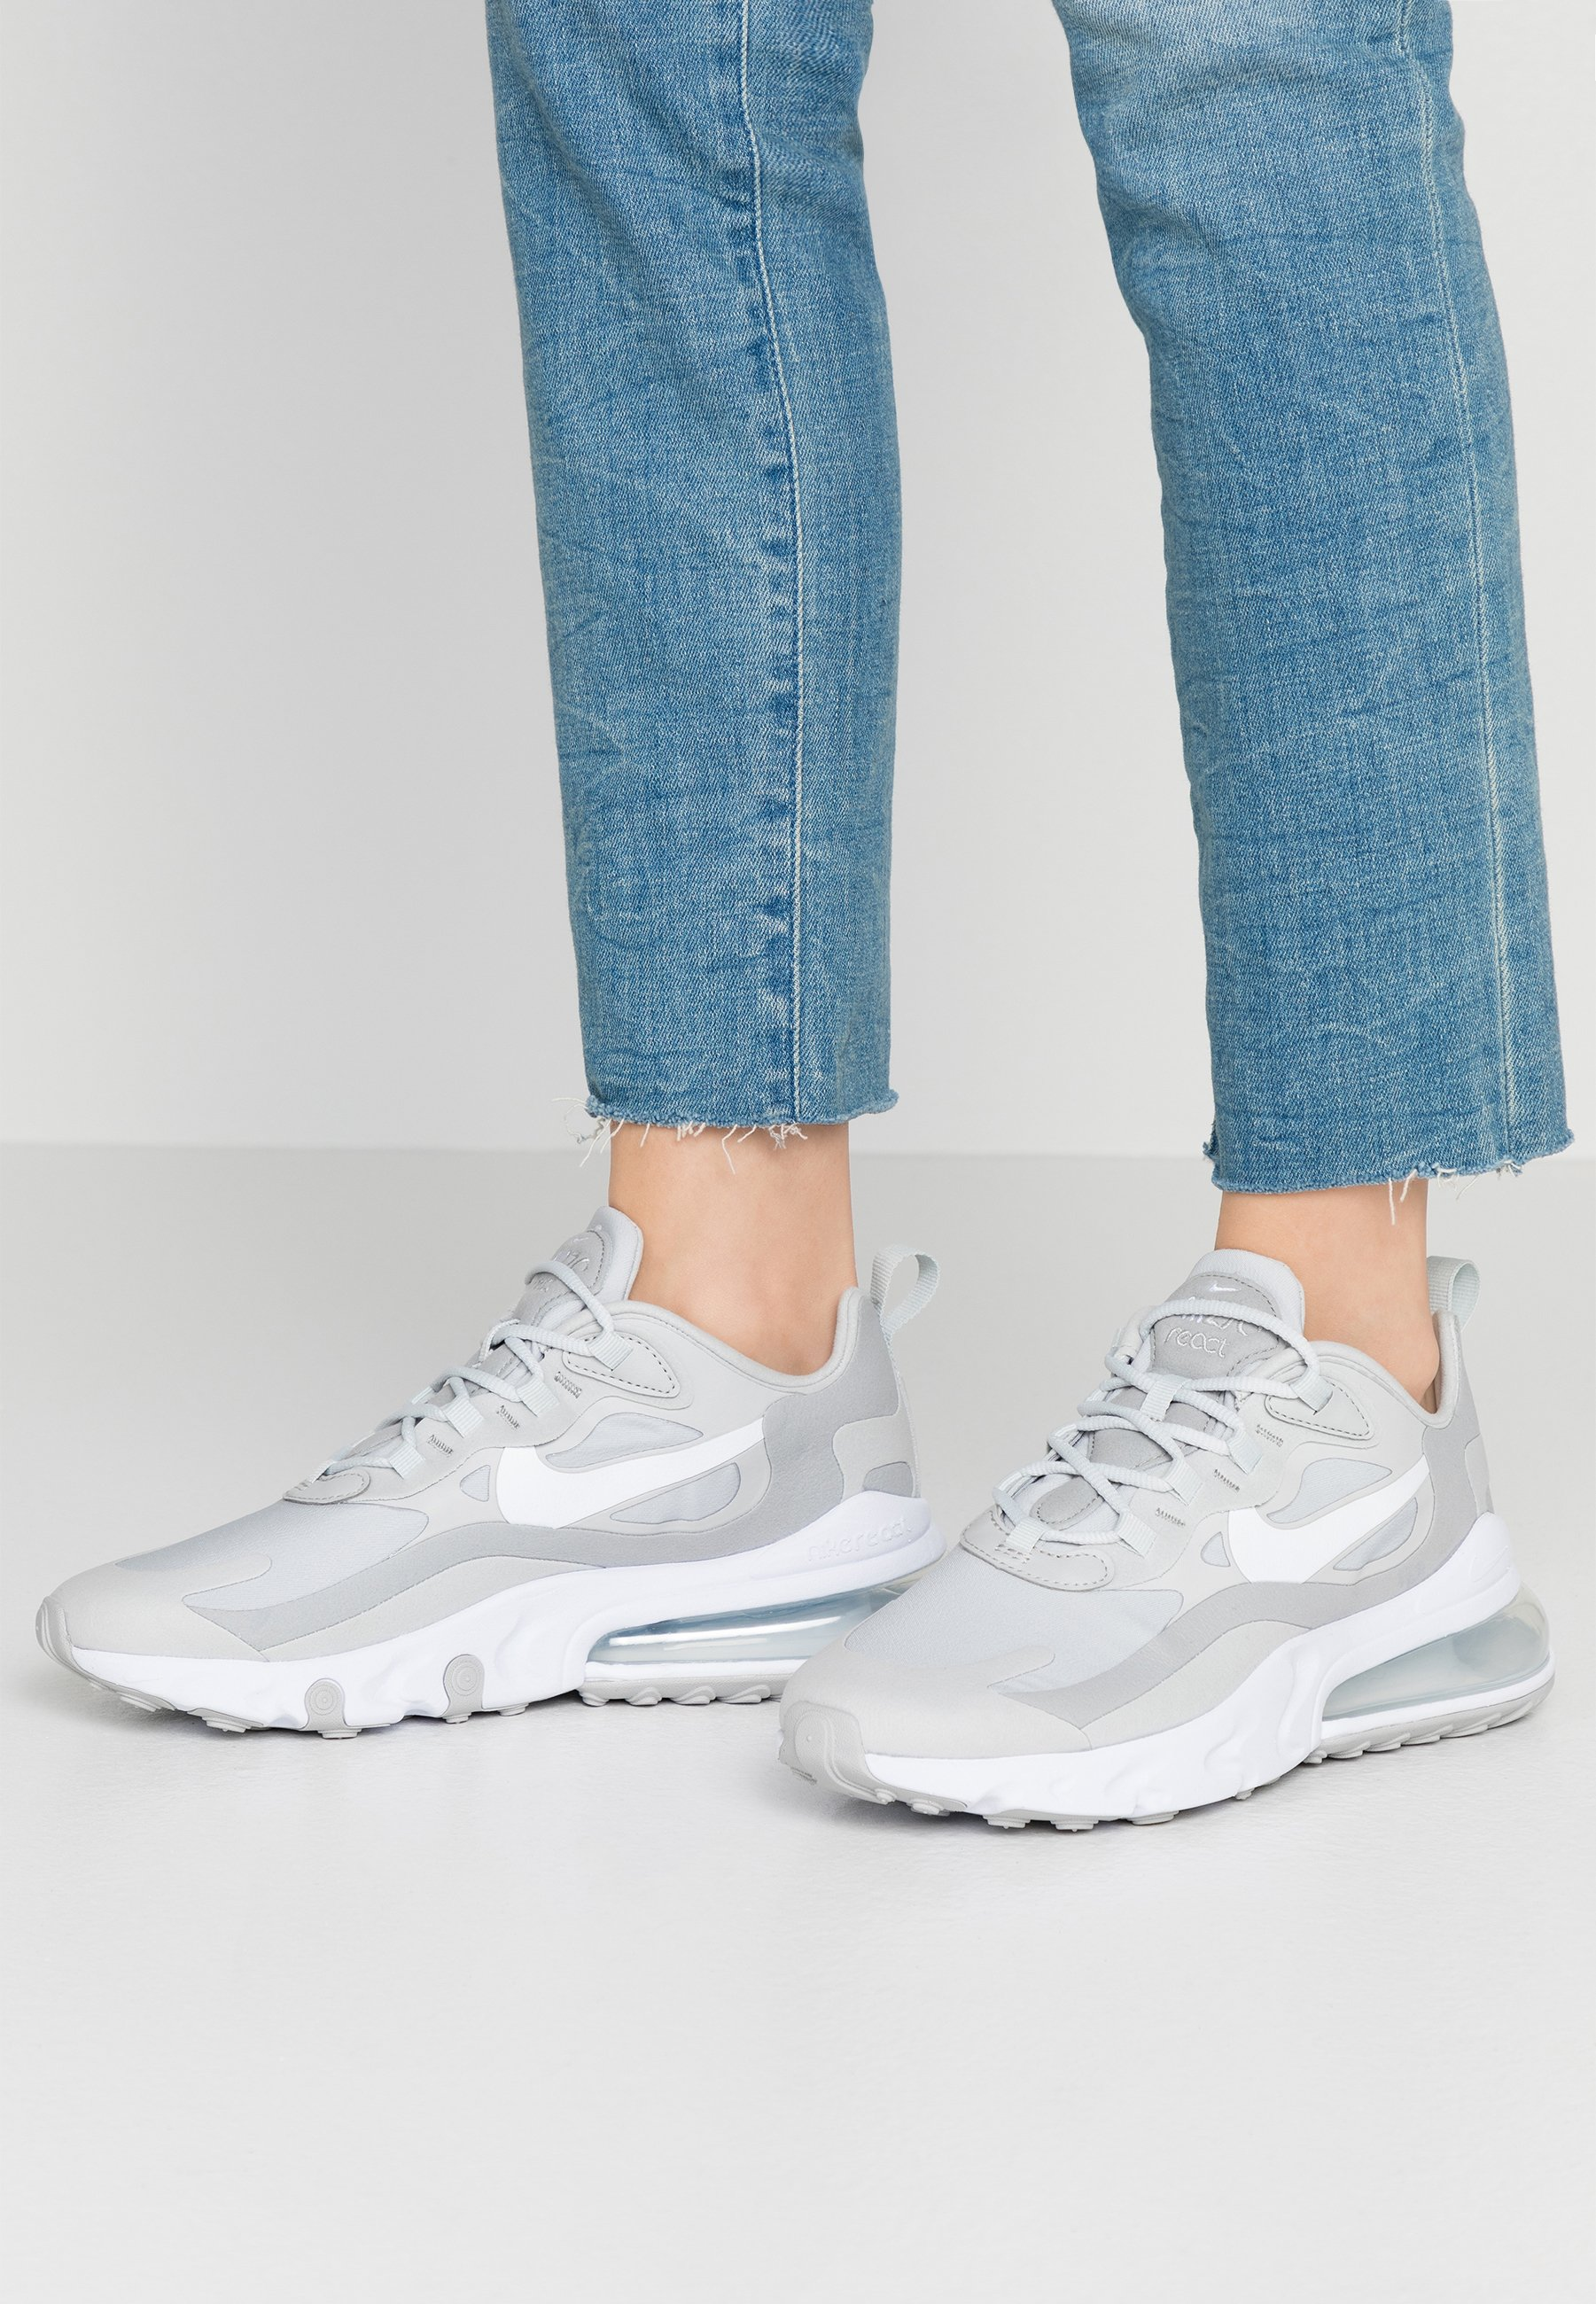 AIR MAX 270 REACT Matalavartiset tennarit grey fogwhitelight smoke grey